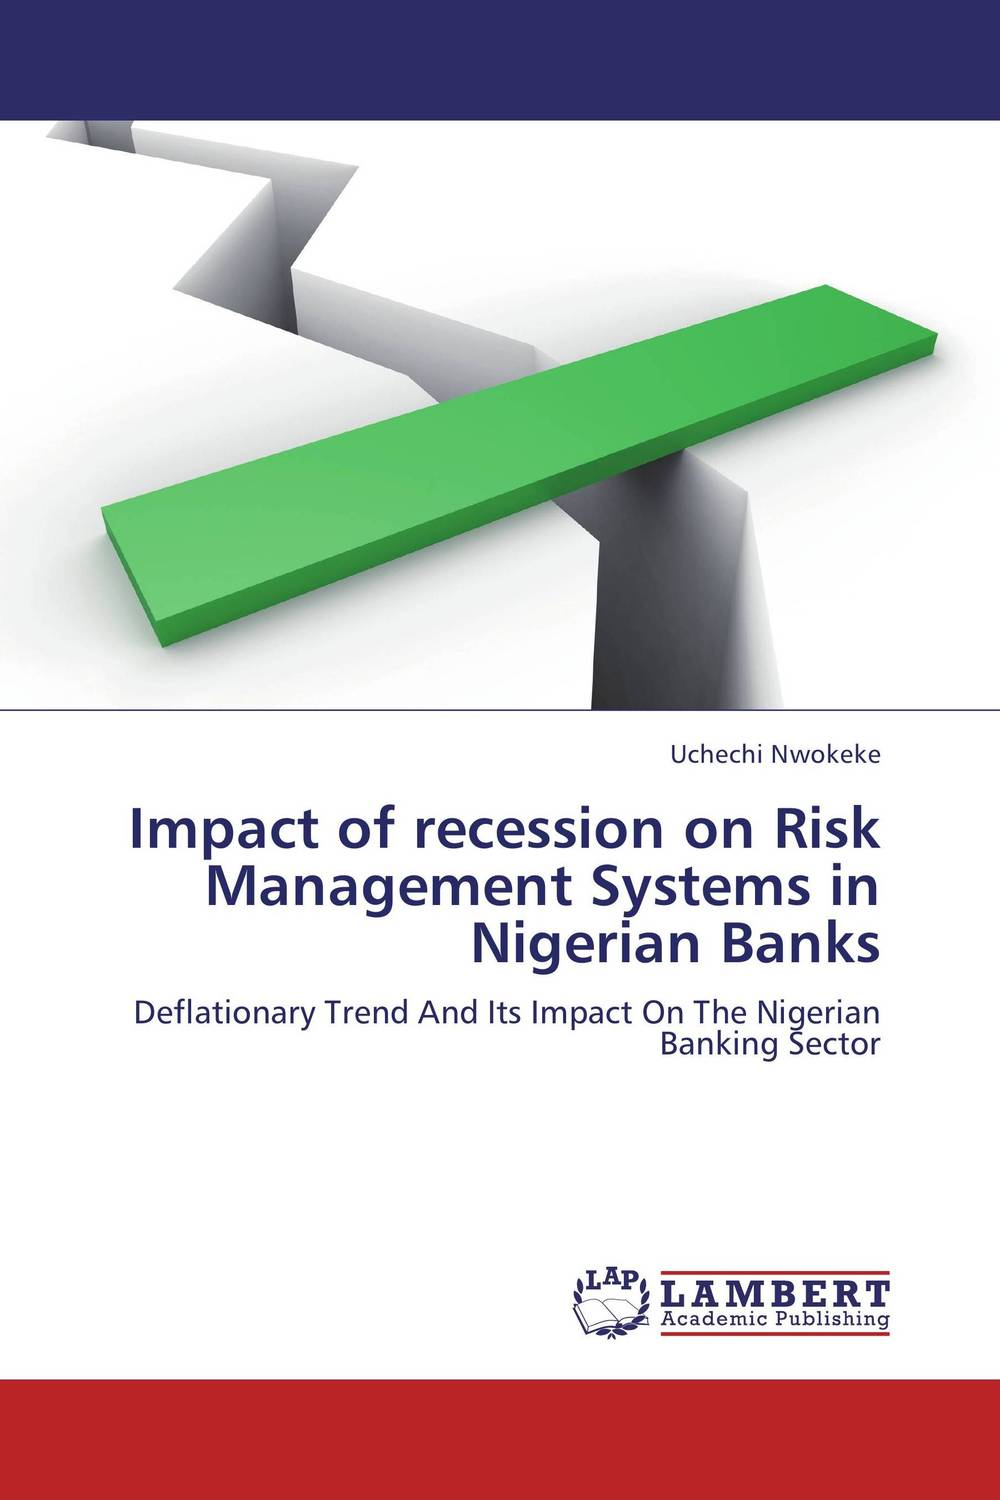 Impact of recession on Risk Management Systems in Nigerian Banks sim segal corporate value of enterprise risk management the next step in business management